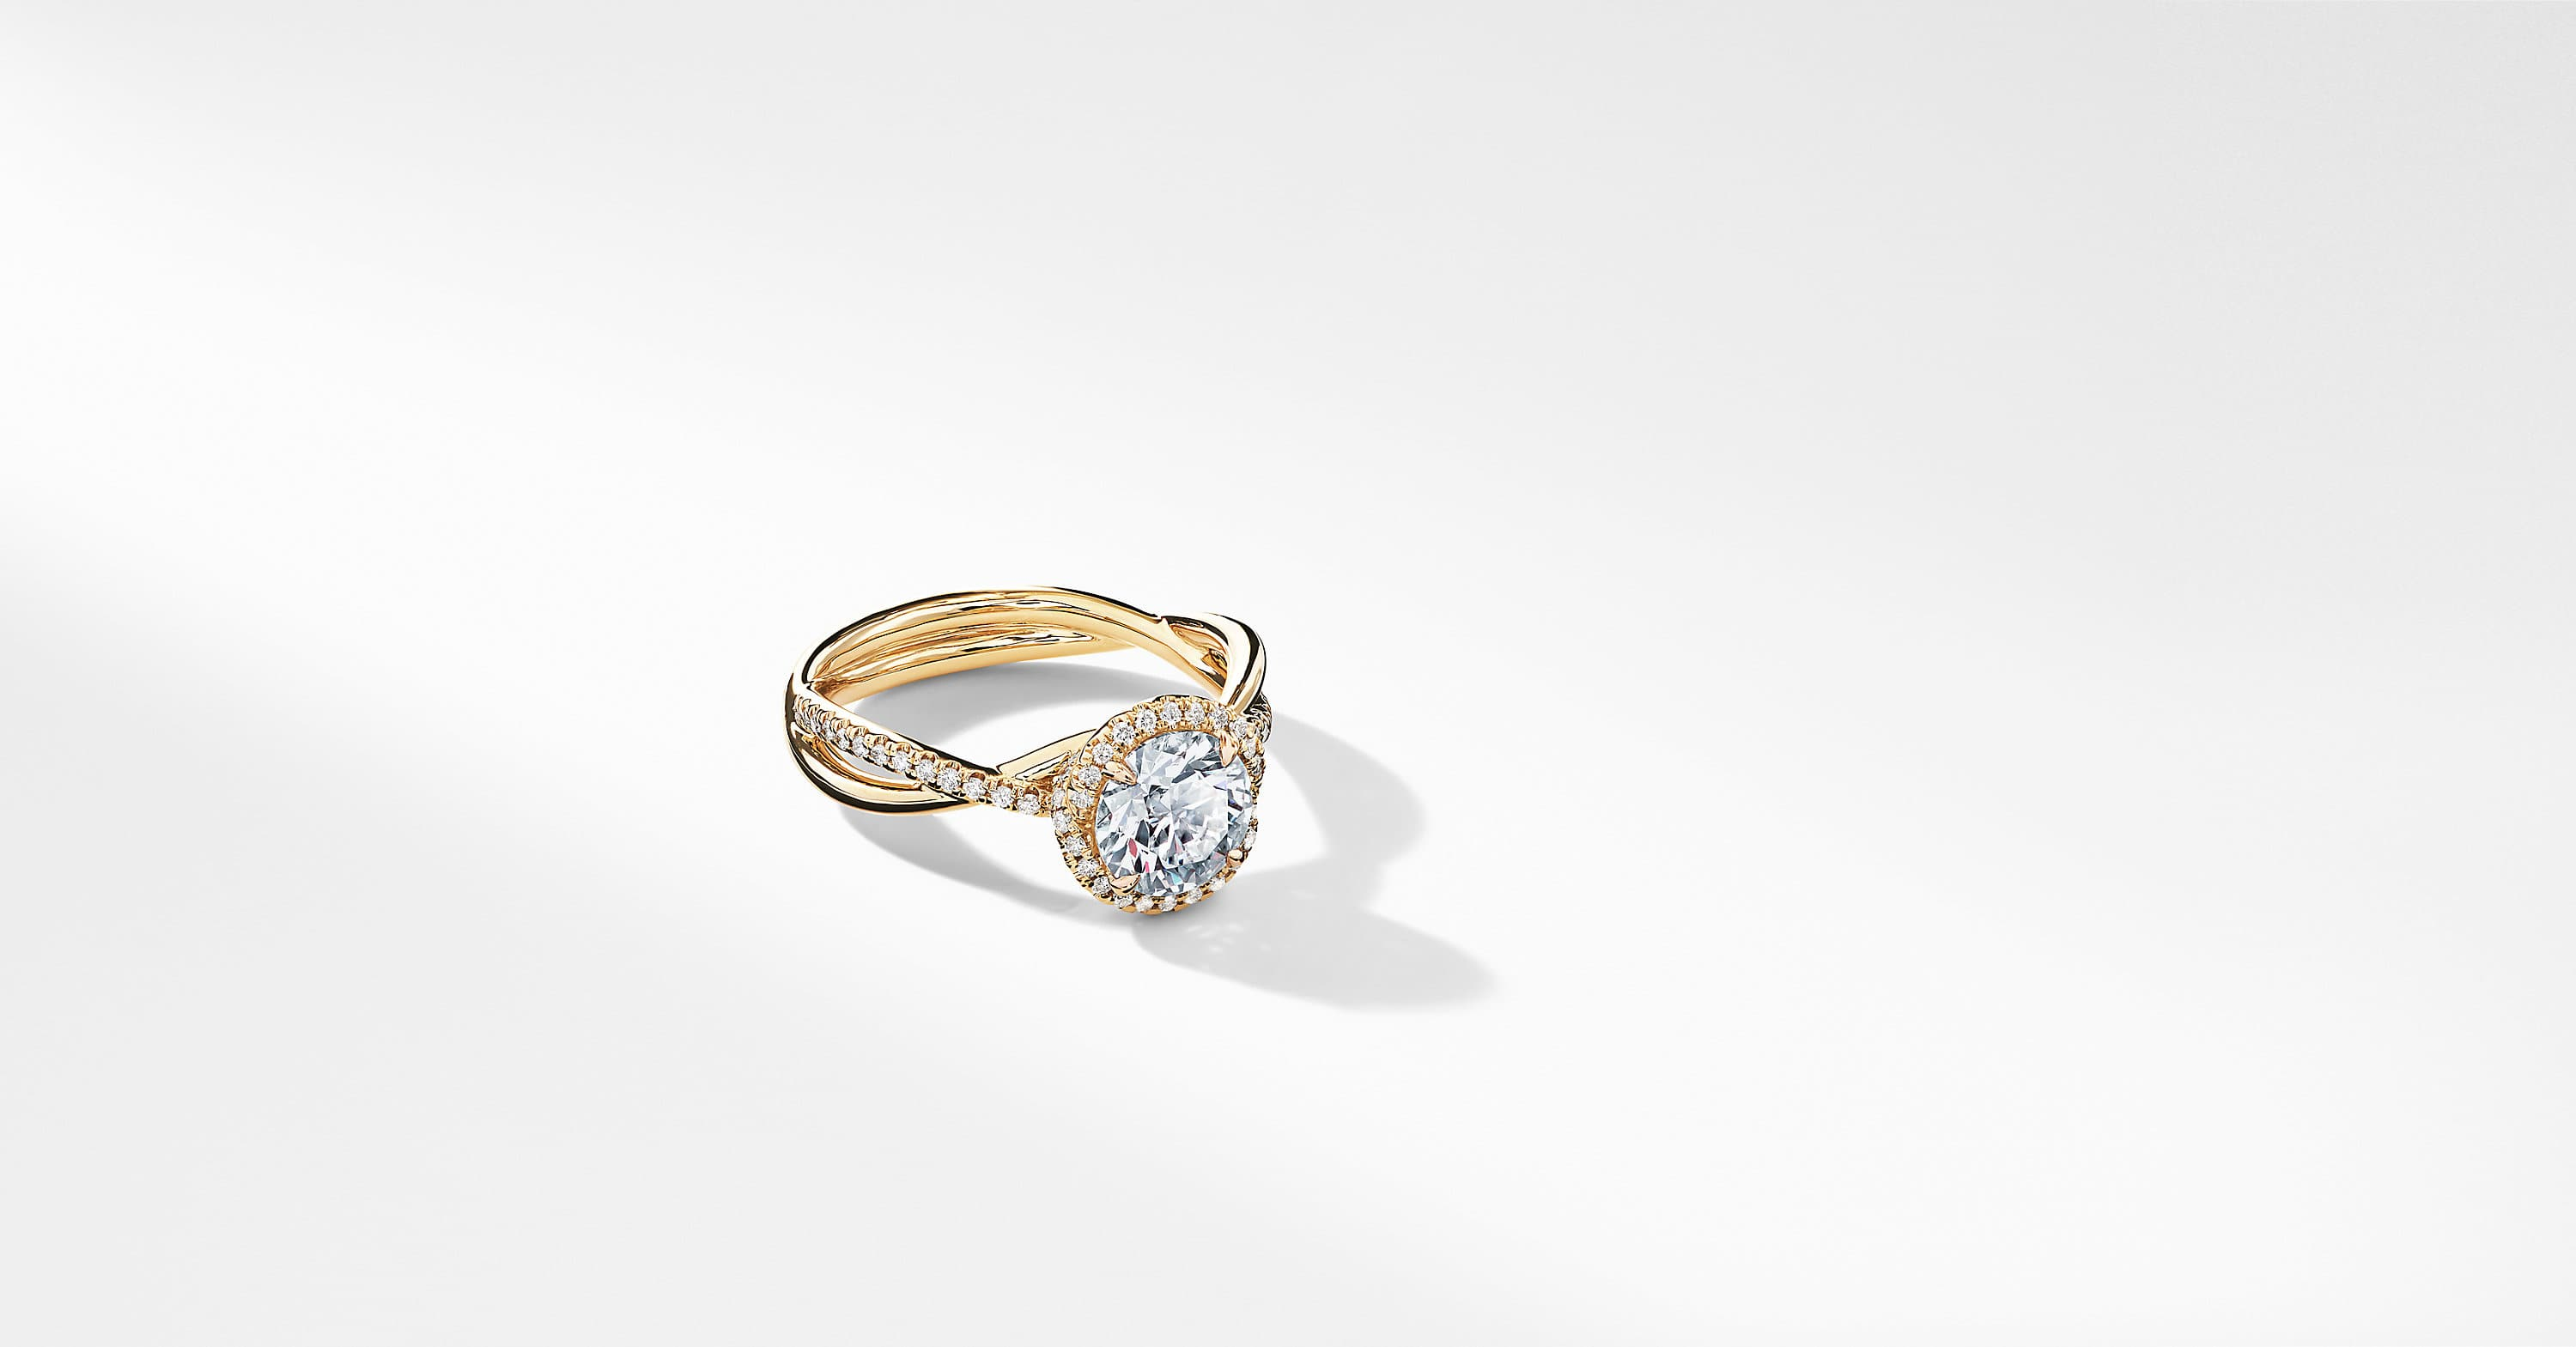 DY Lanai Part Pavé Engagement Ring in 18K Yellow Gold, Round